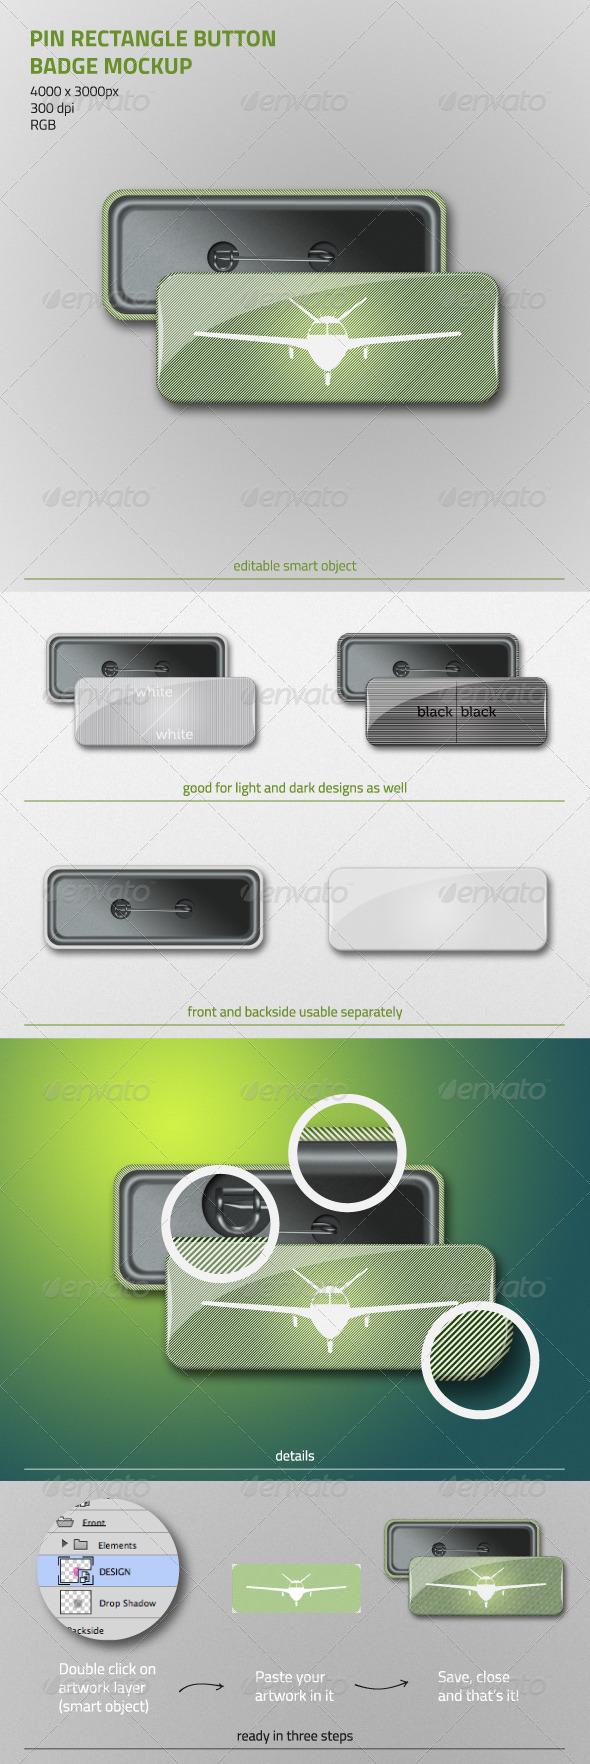 Pin Rectangle Button Badge Mockup - Product Mock-Ups Graphics